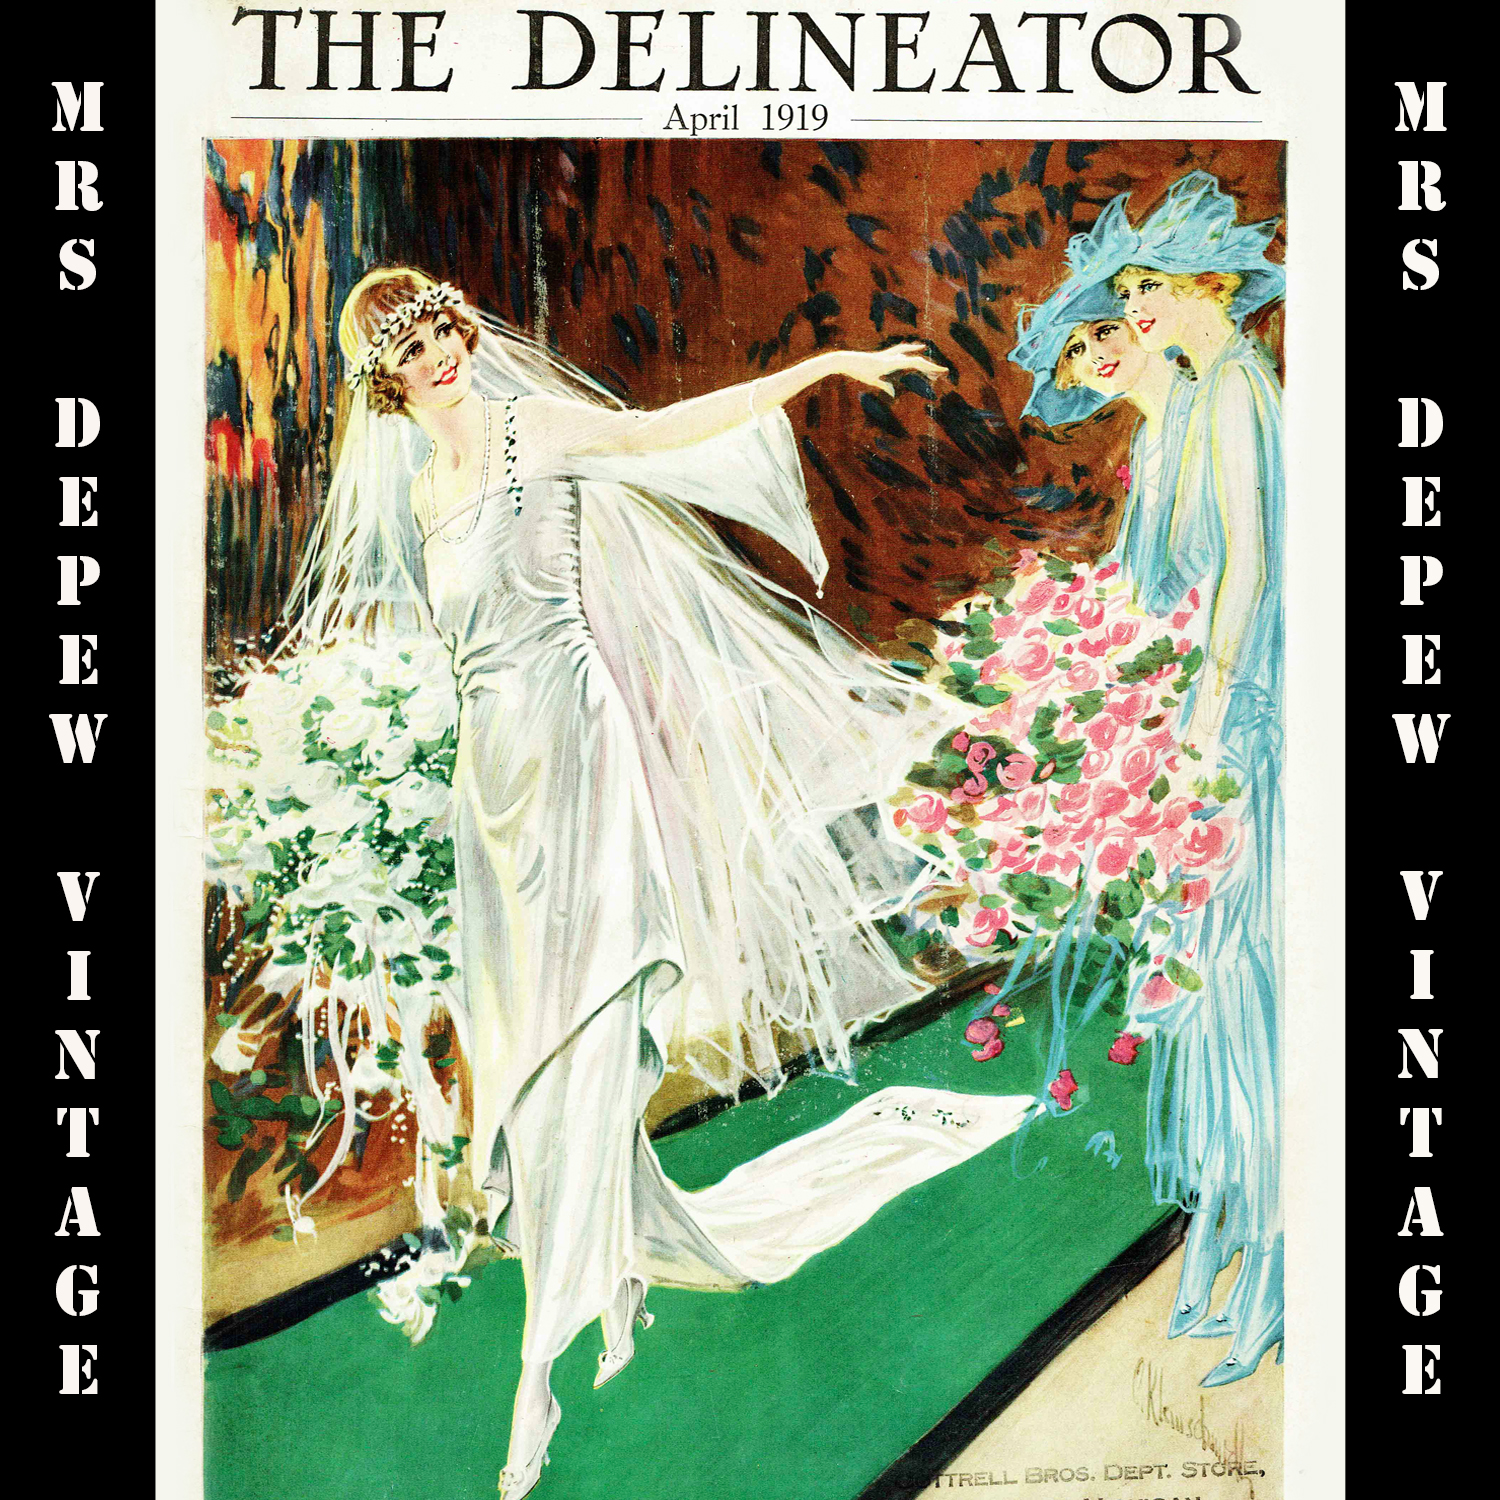 The Delineator April 1919